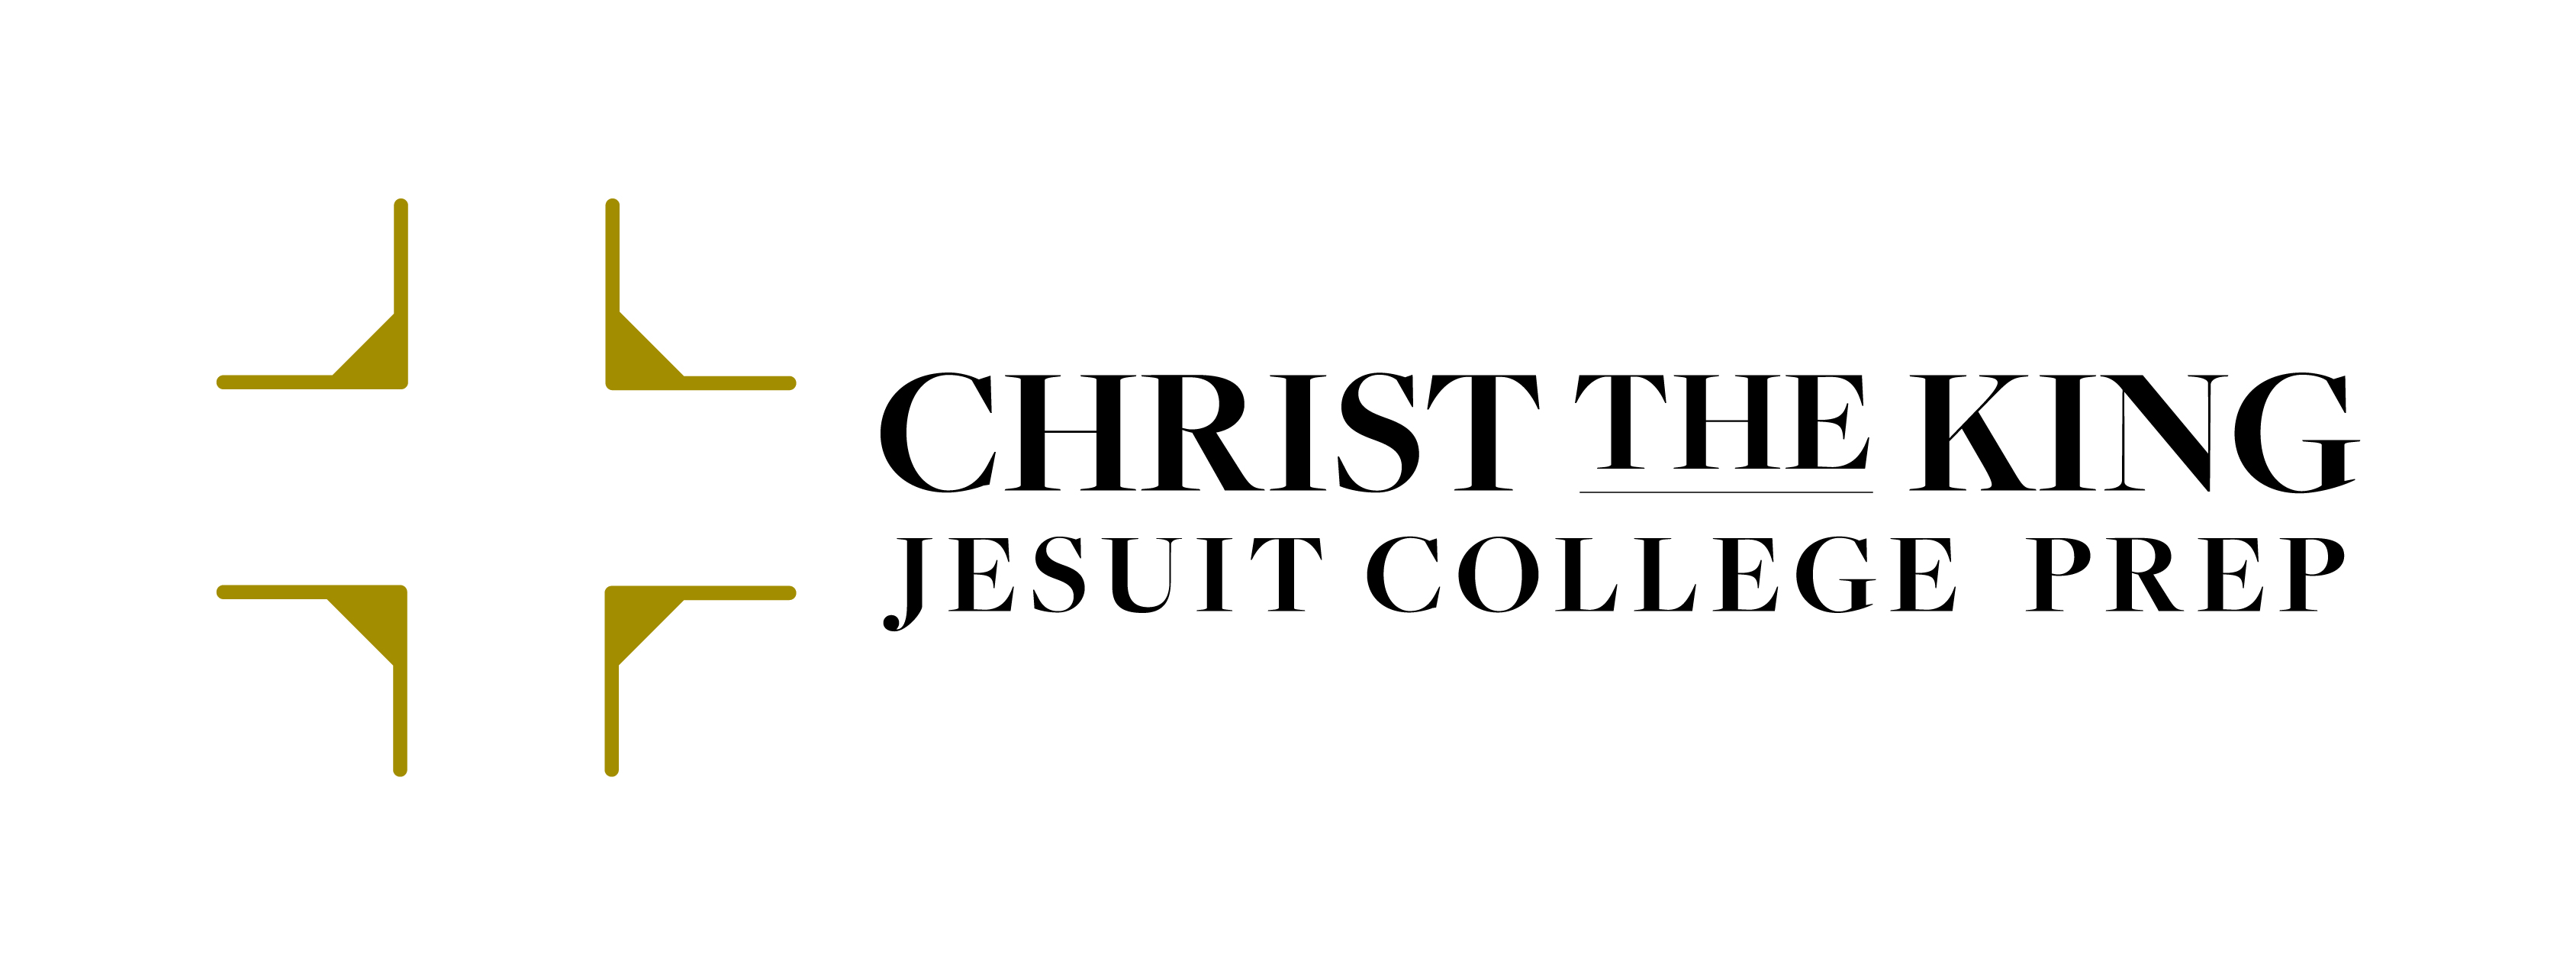 Christ the King Jesuit College Prep